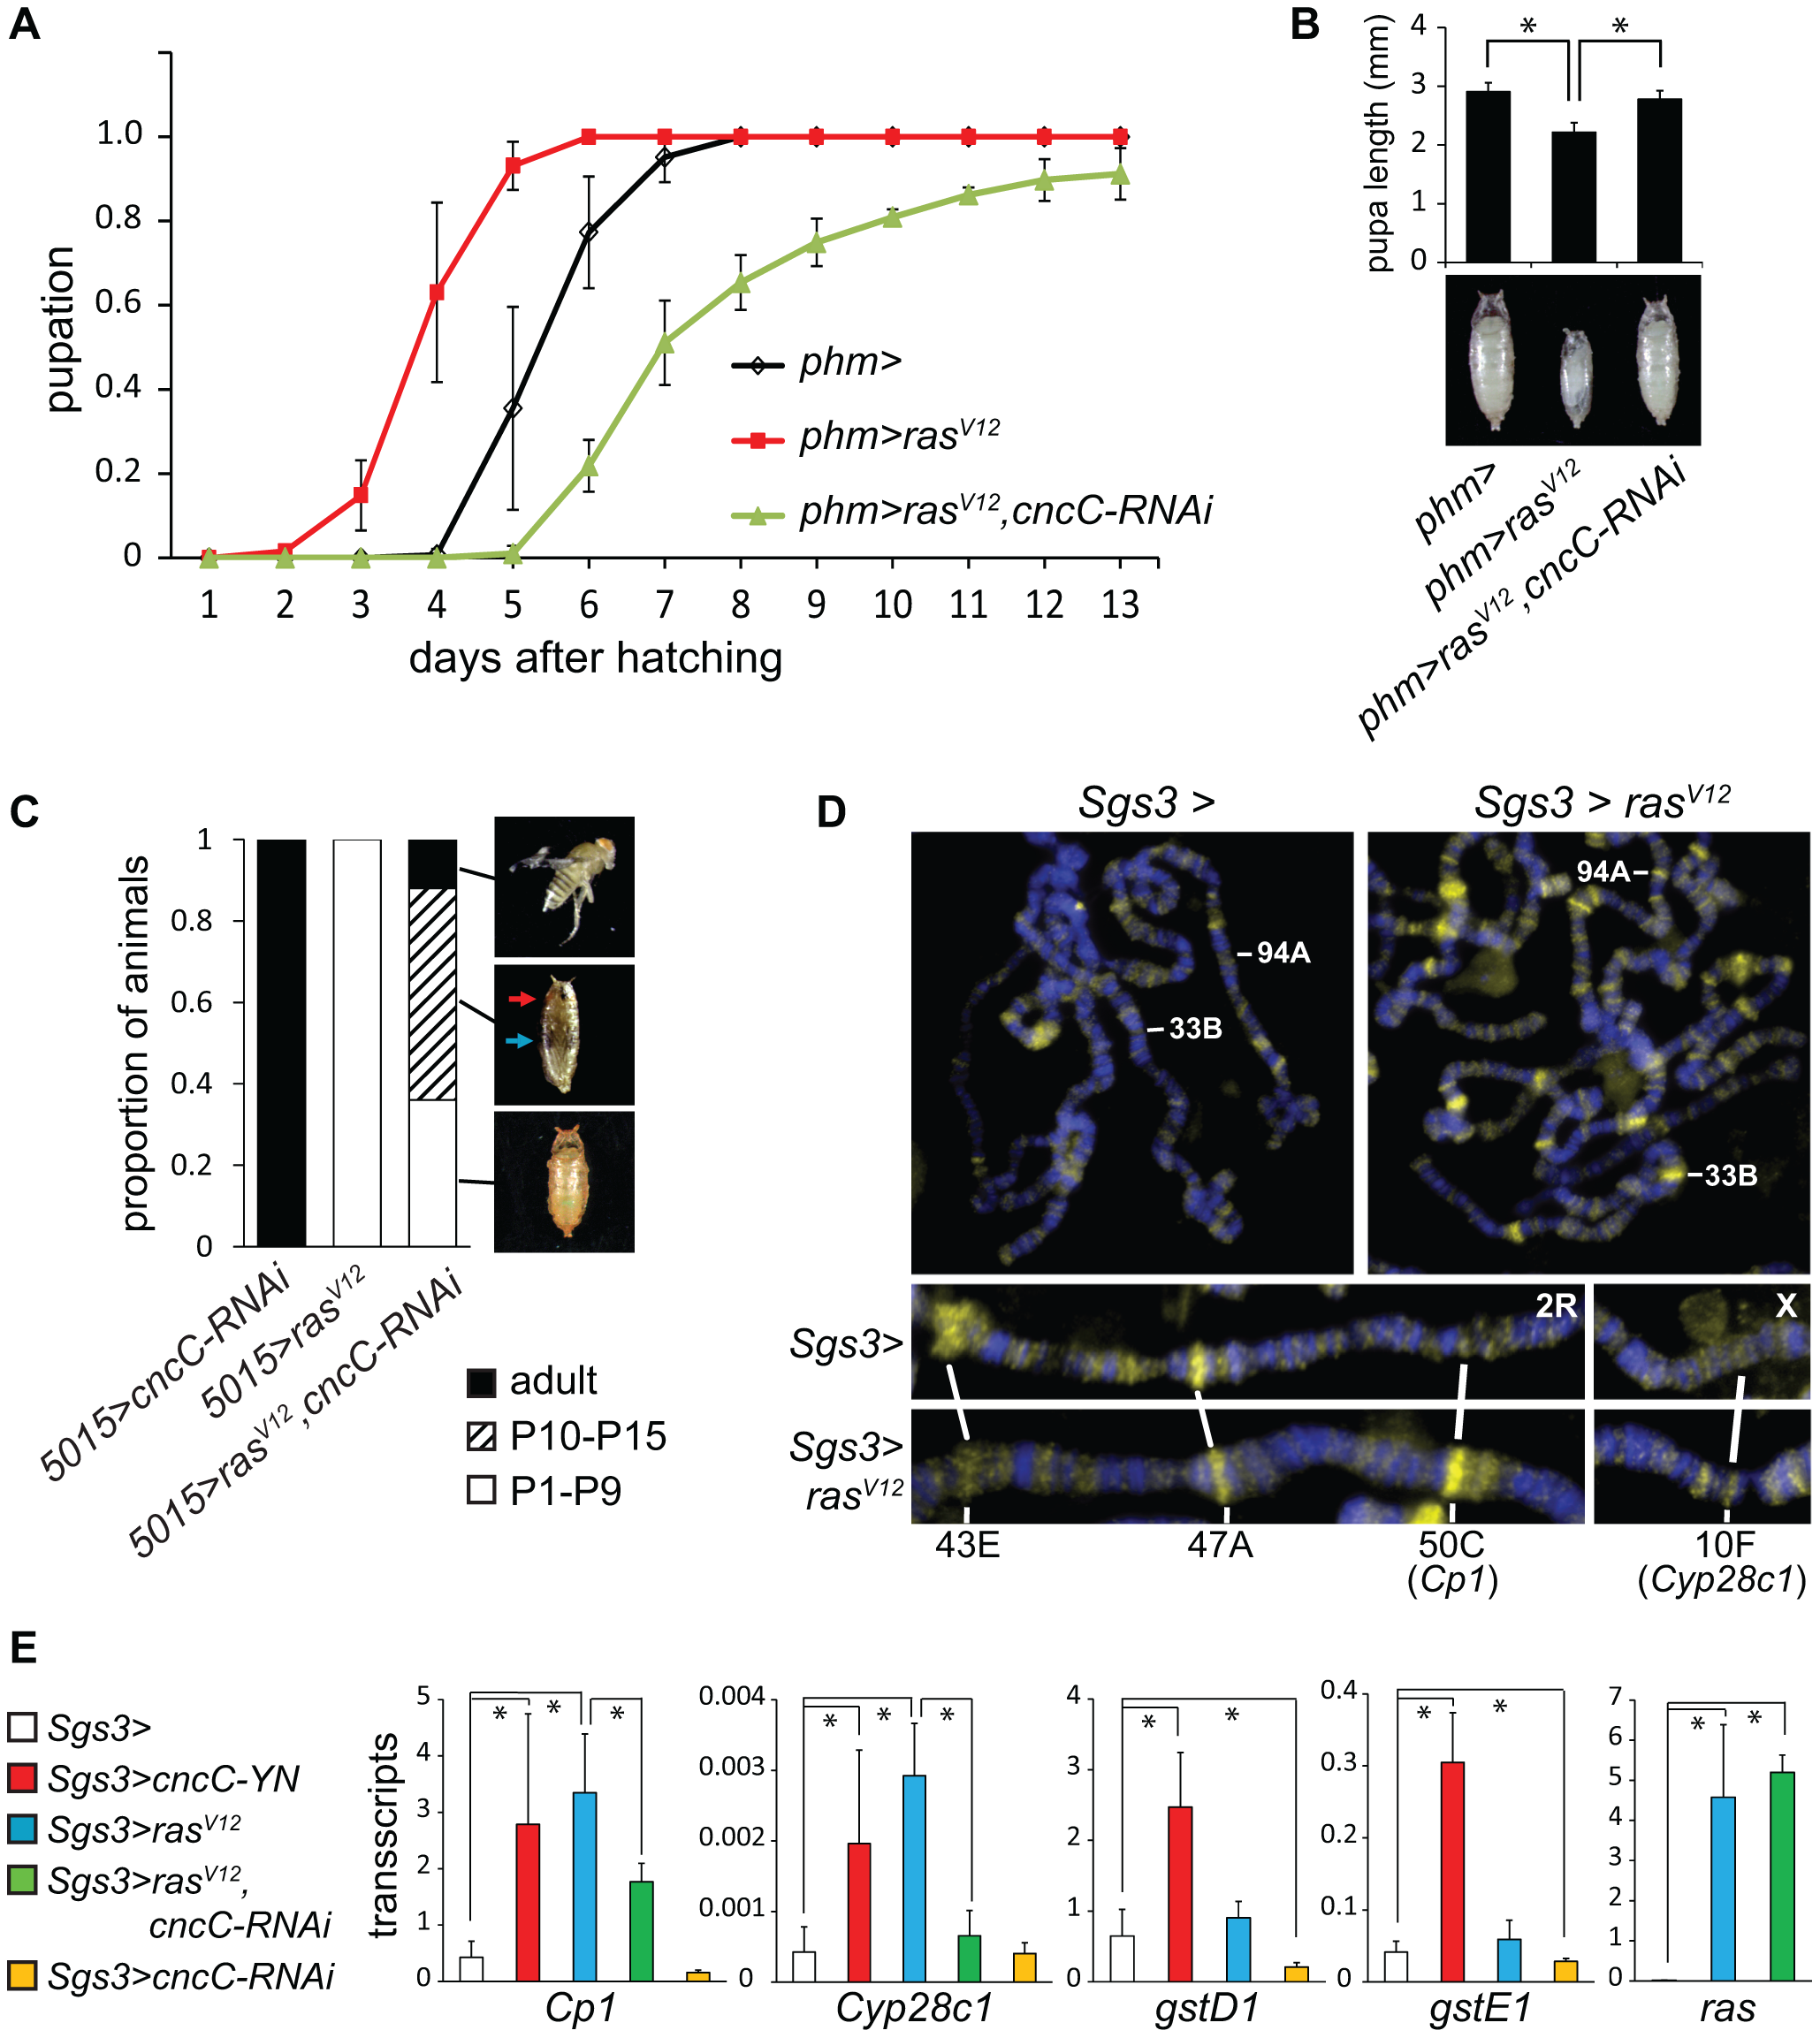 Interrelationships between Ras signaling and CncC functions.